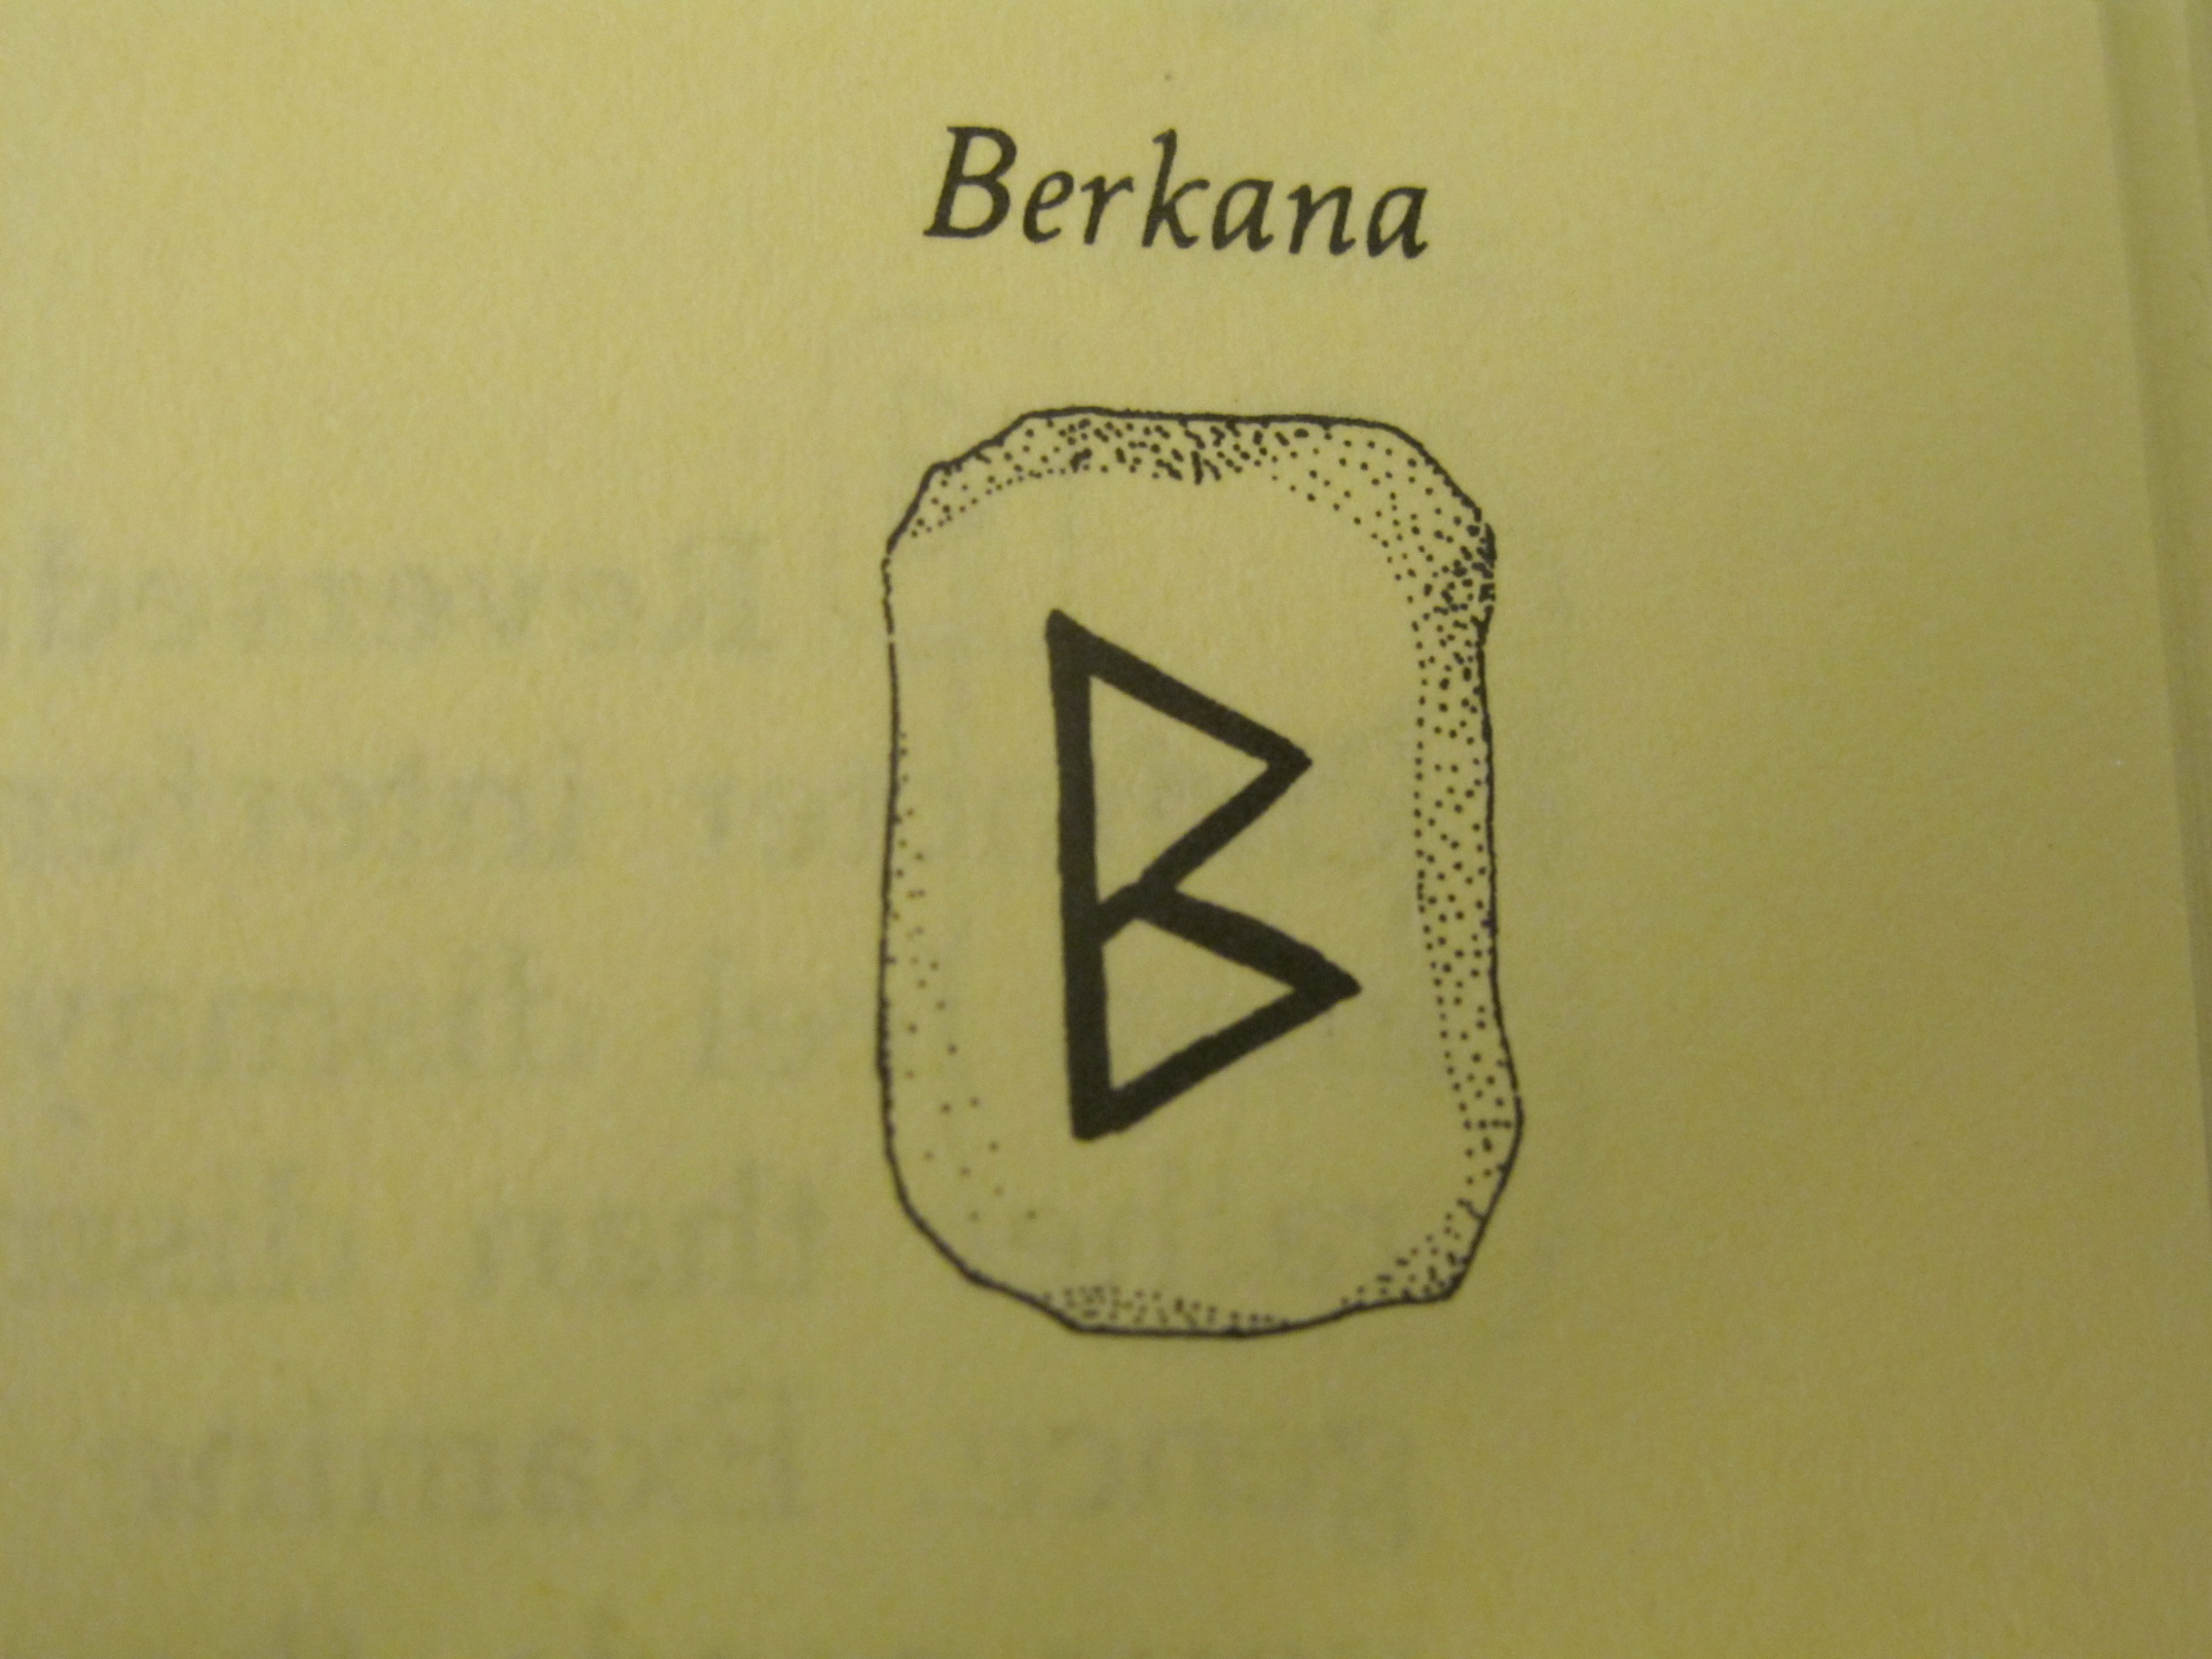 July 2013 living chapters this rune is the berkana rune it represents growth rebirth and birch tree the growth may occur in affairs of the world family matters buycottarizona Choice Image